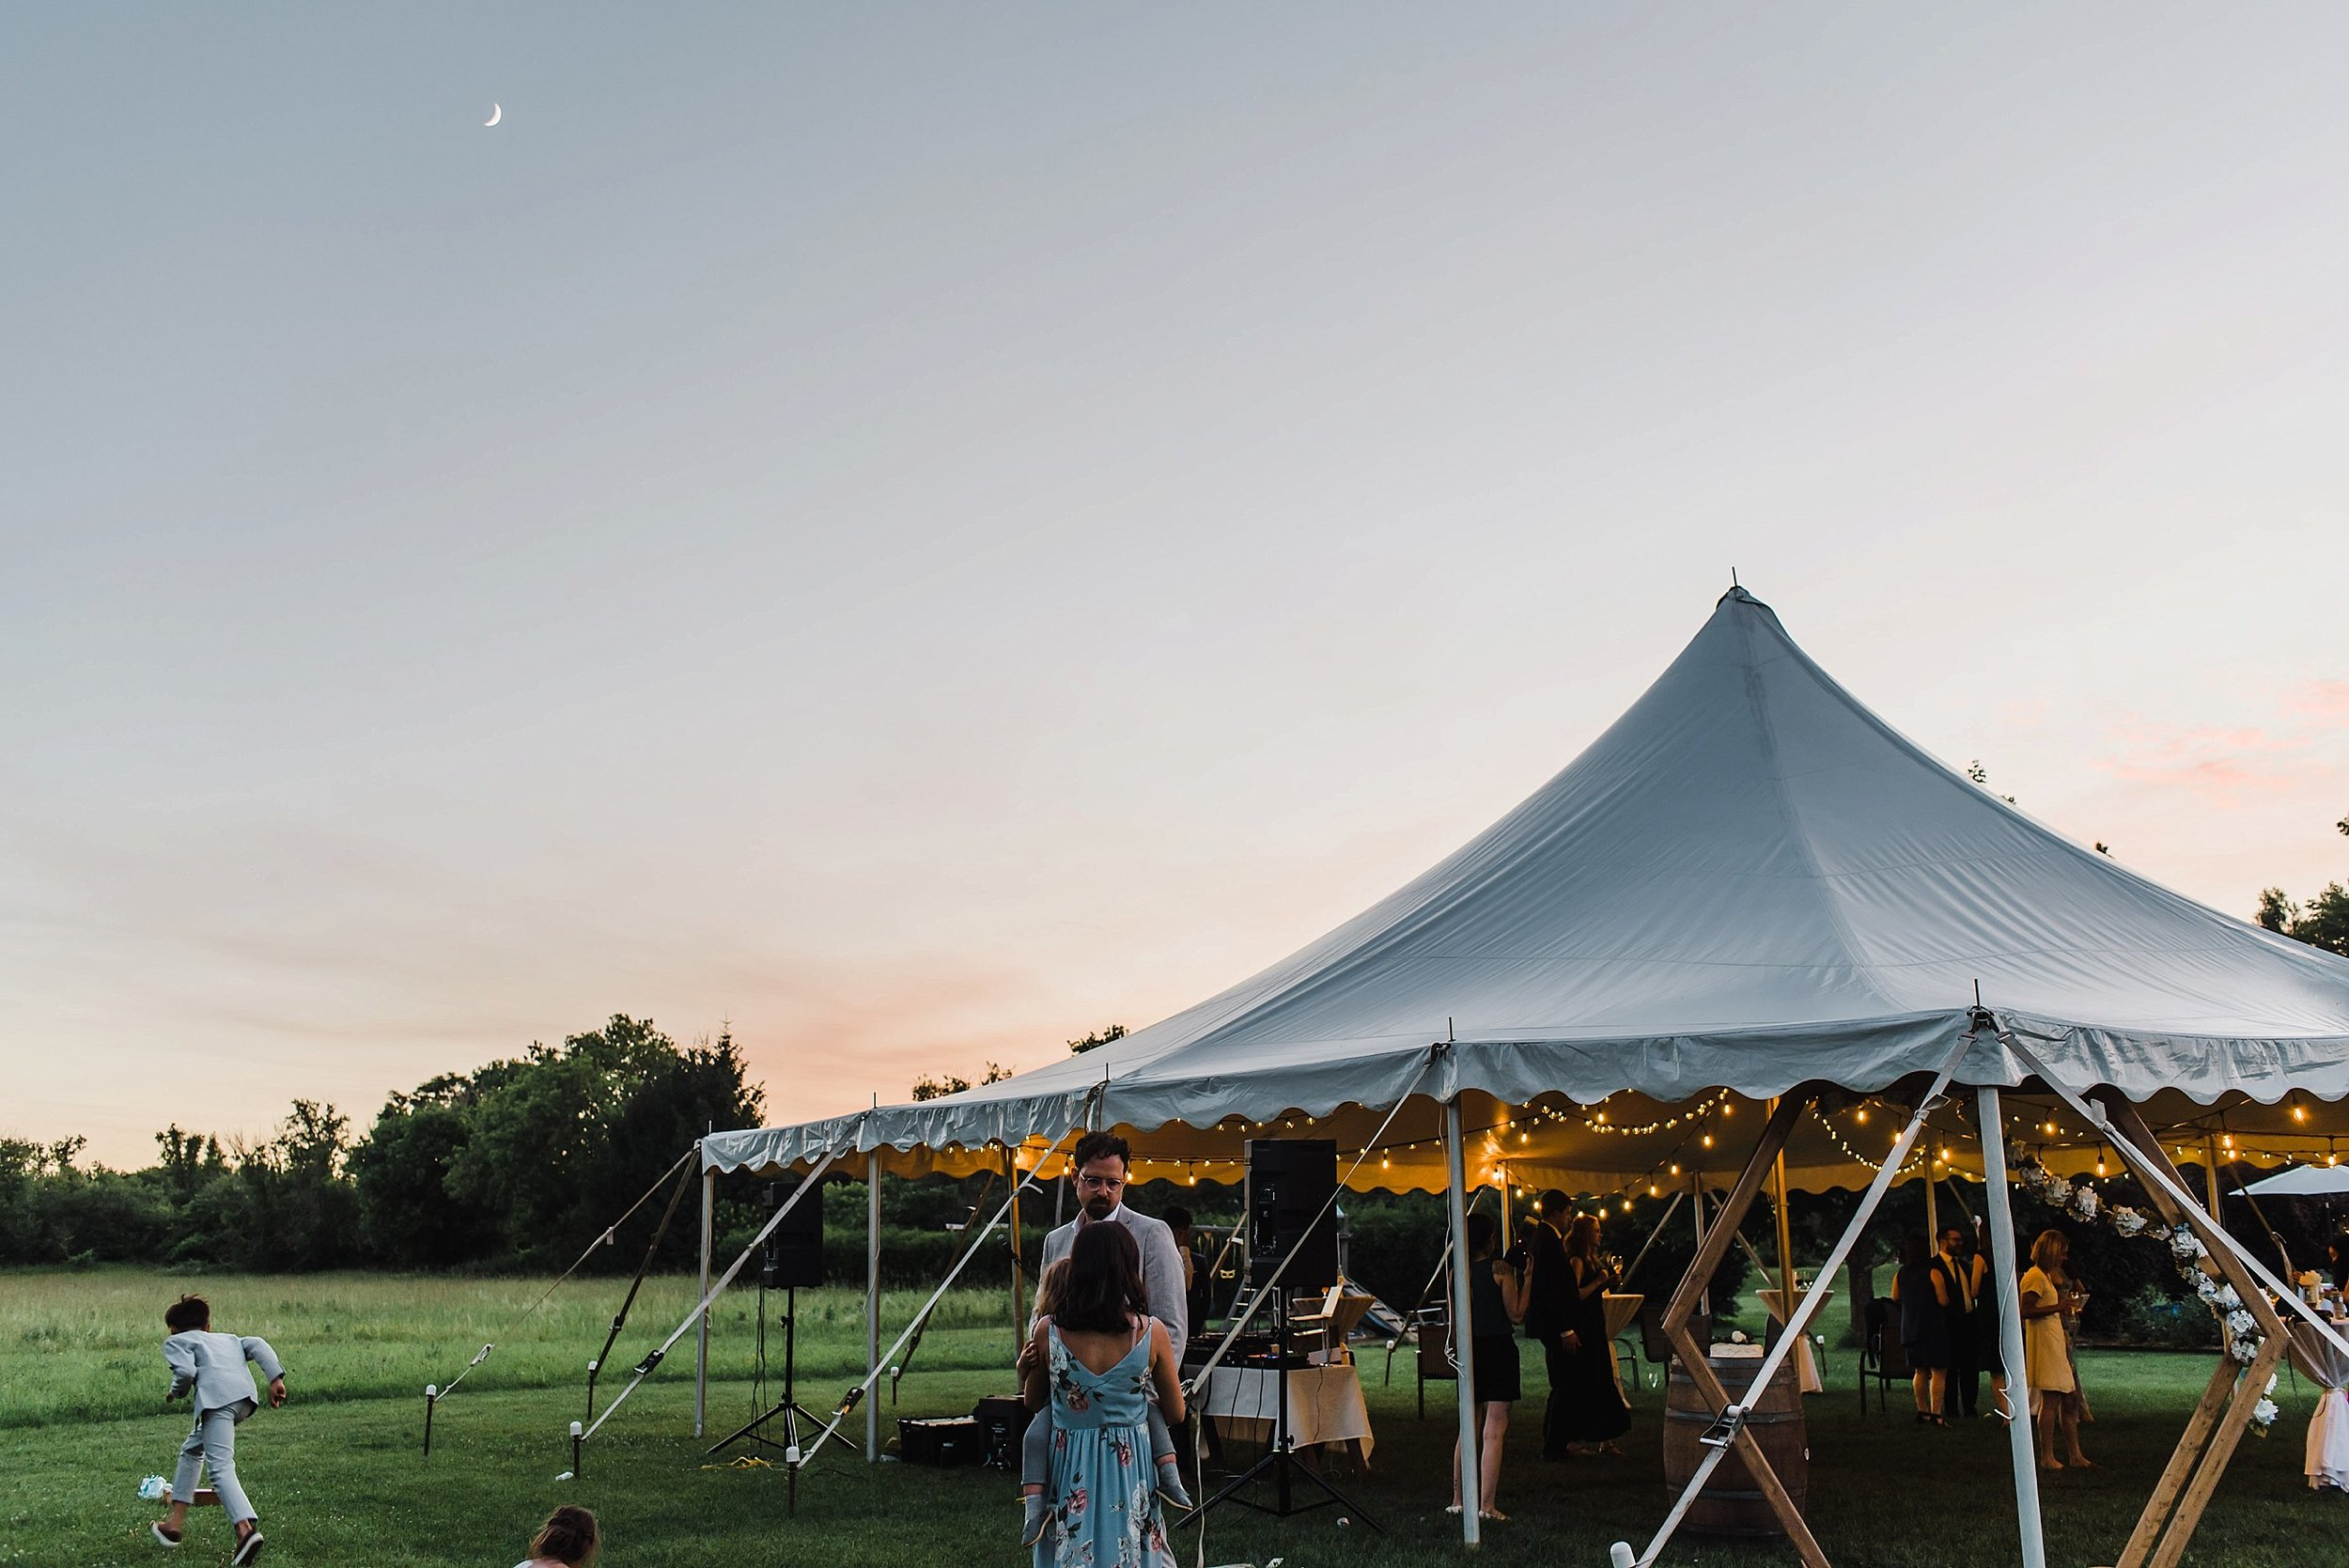 The soft sunset that evening will be one of the most memorable moments of their wedding day.